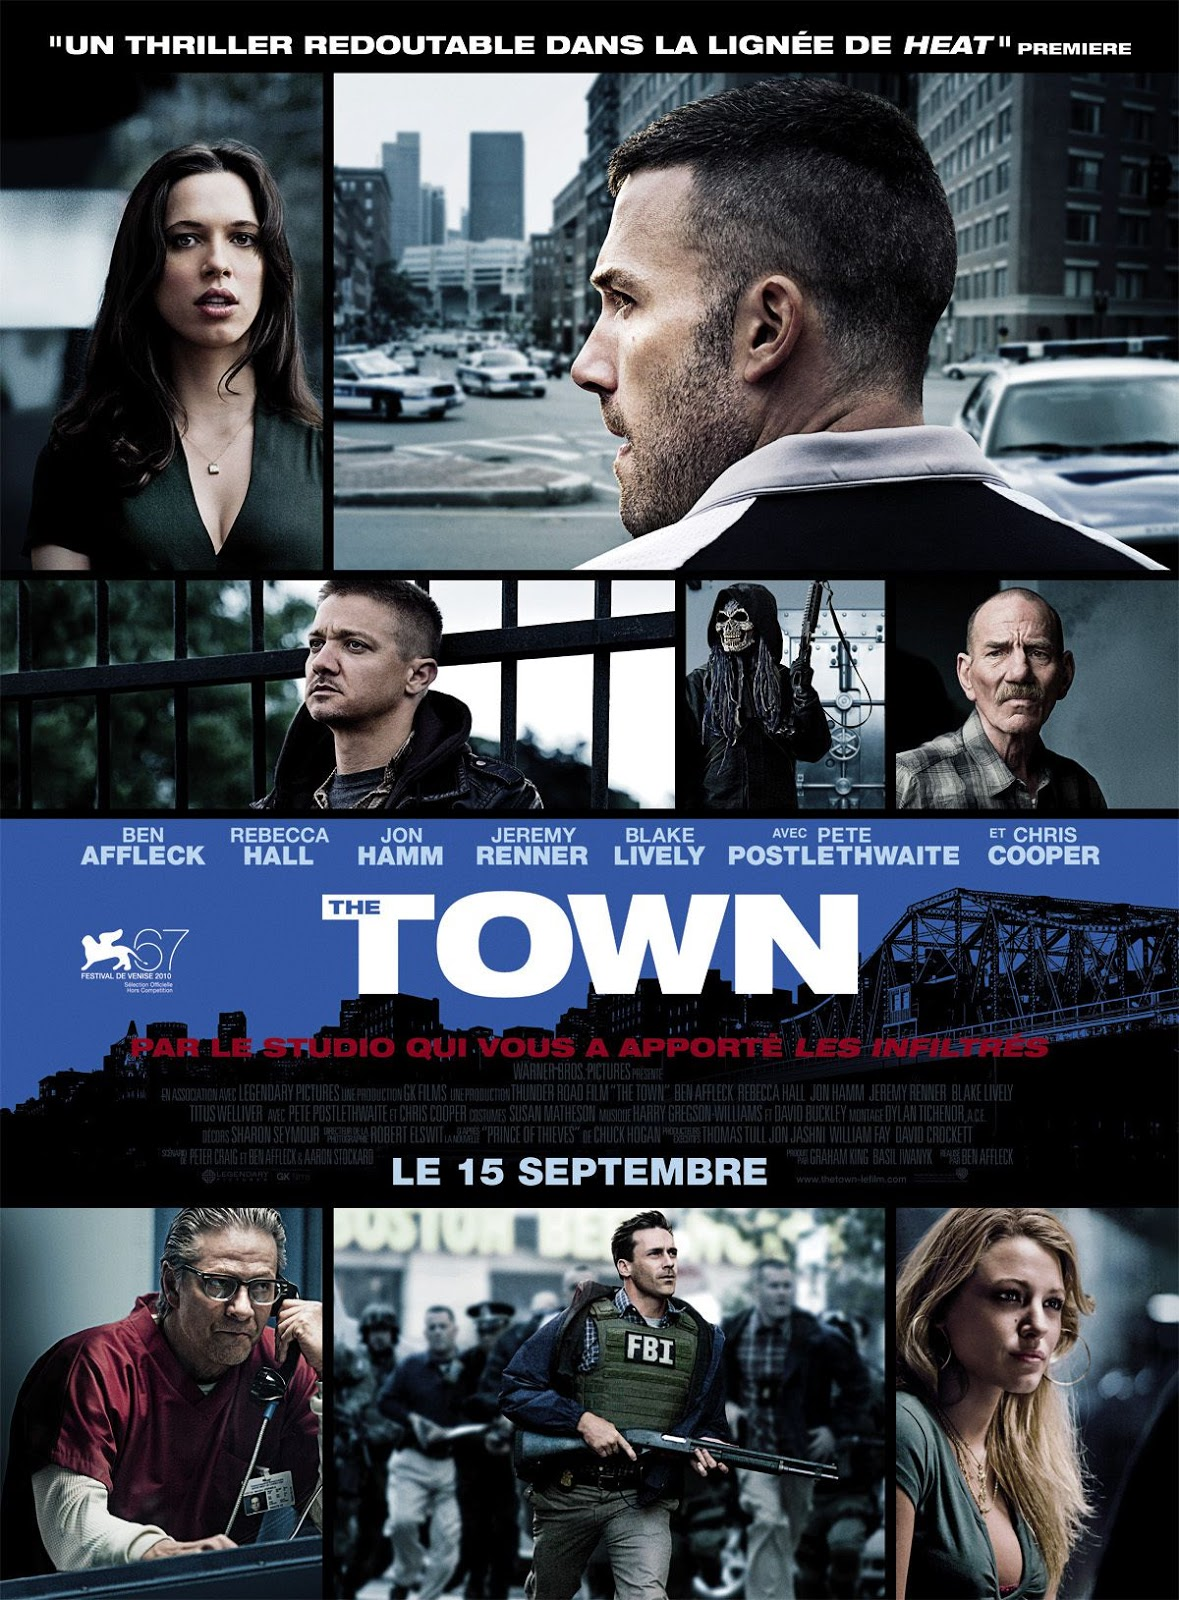 The Town 2010 Dual Audio Hindi English 720p BluRay Full Movie Free Download